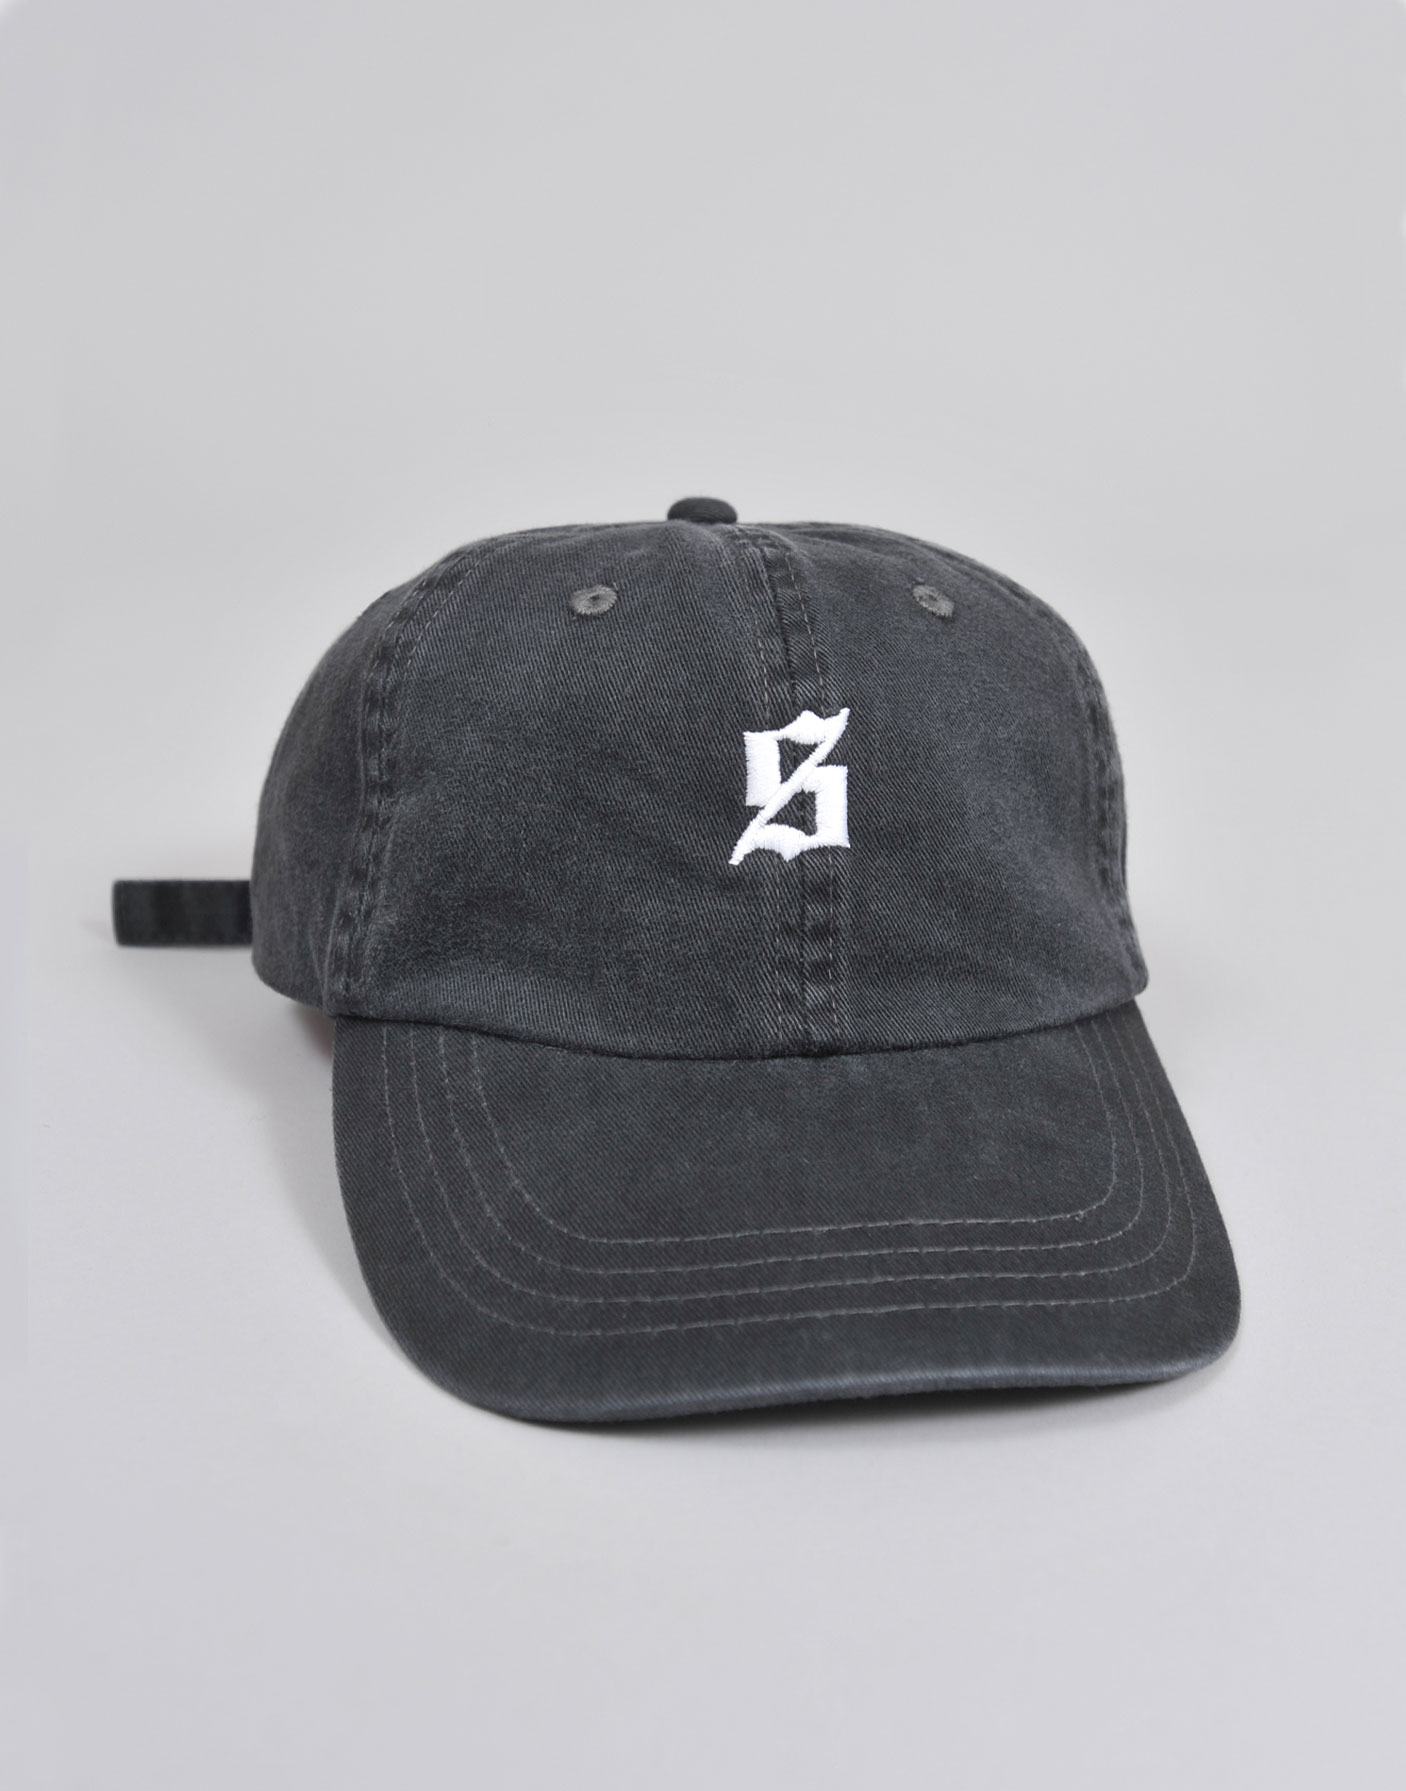 Set S Polo Cap - Set Black 6 Panel Polo Cap worn by Skepta - Set S Logo 2a4a51b9657